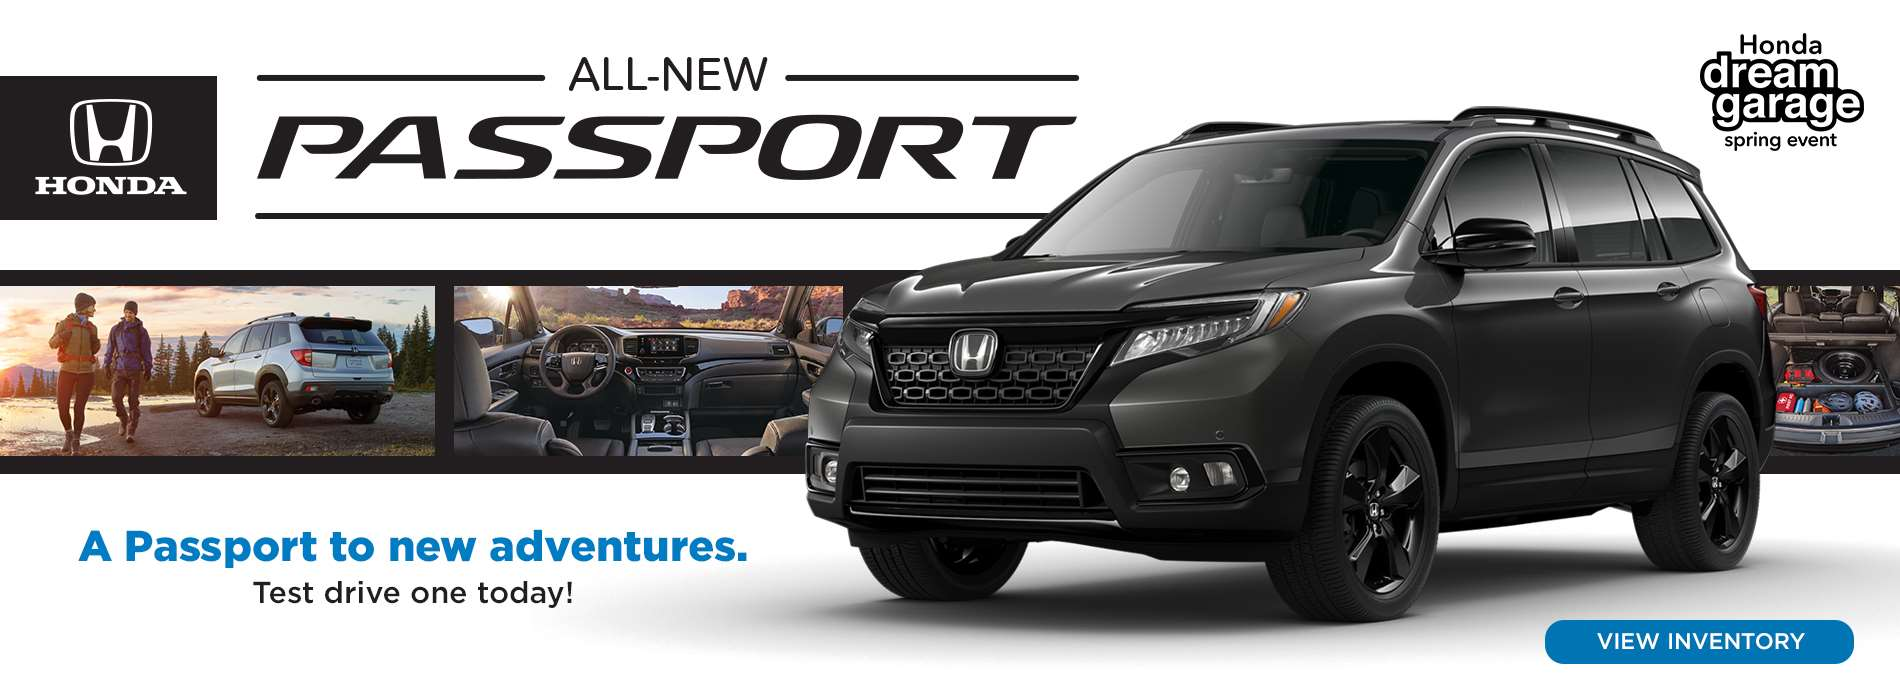 Honda - All-New Passport - Dream Garage Spring Event - April 2019